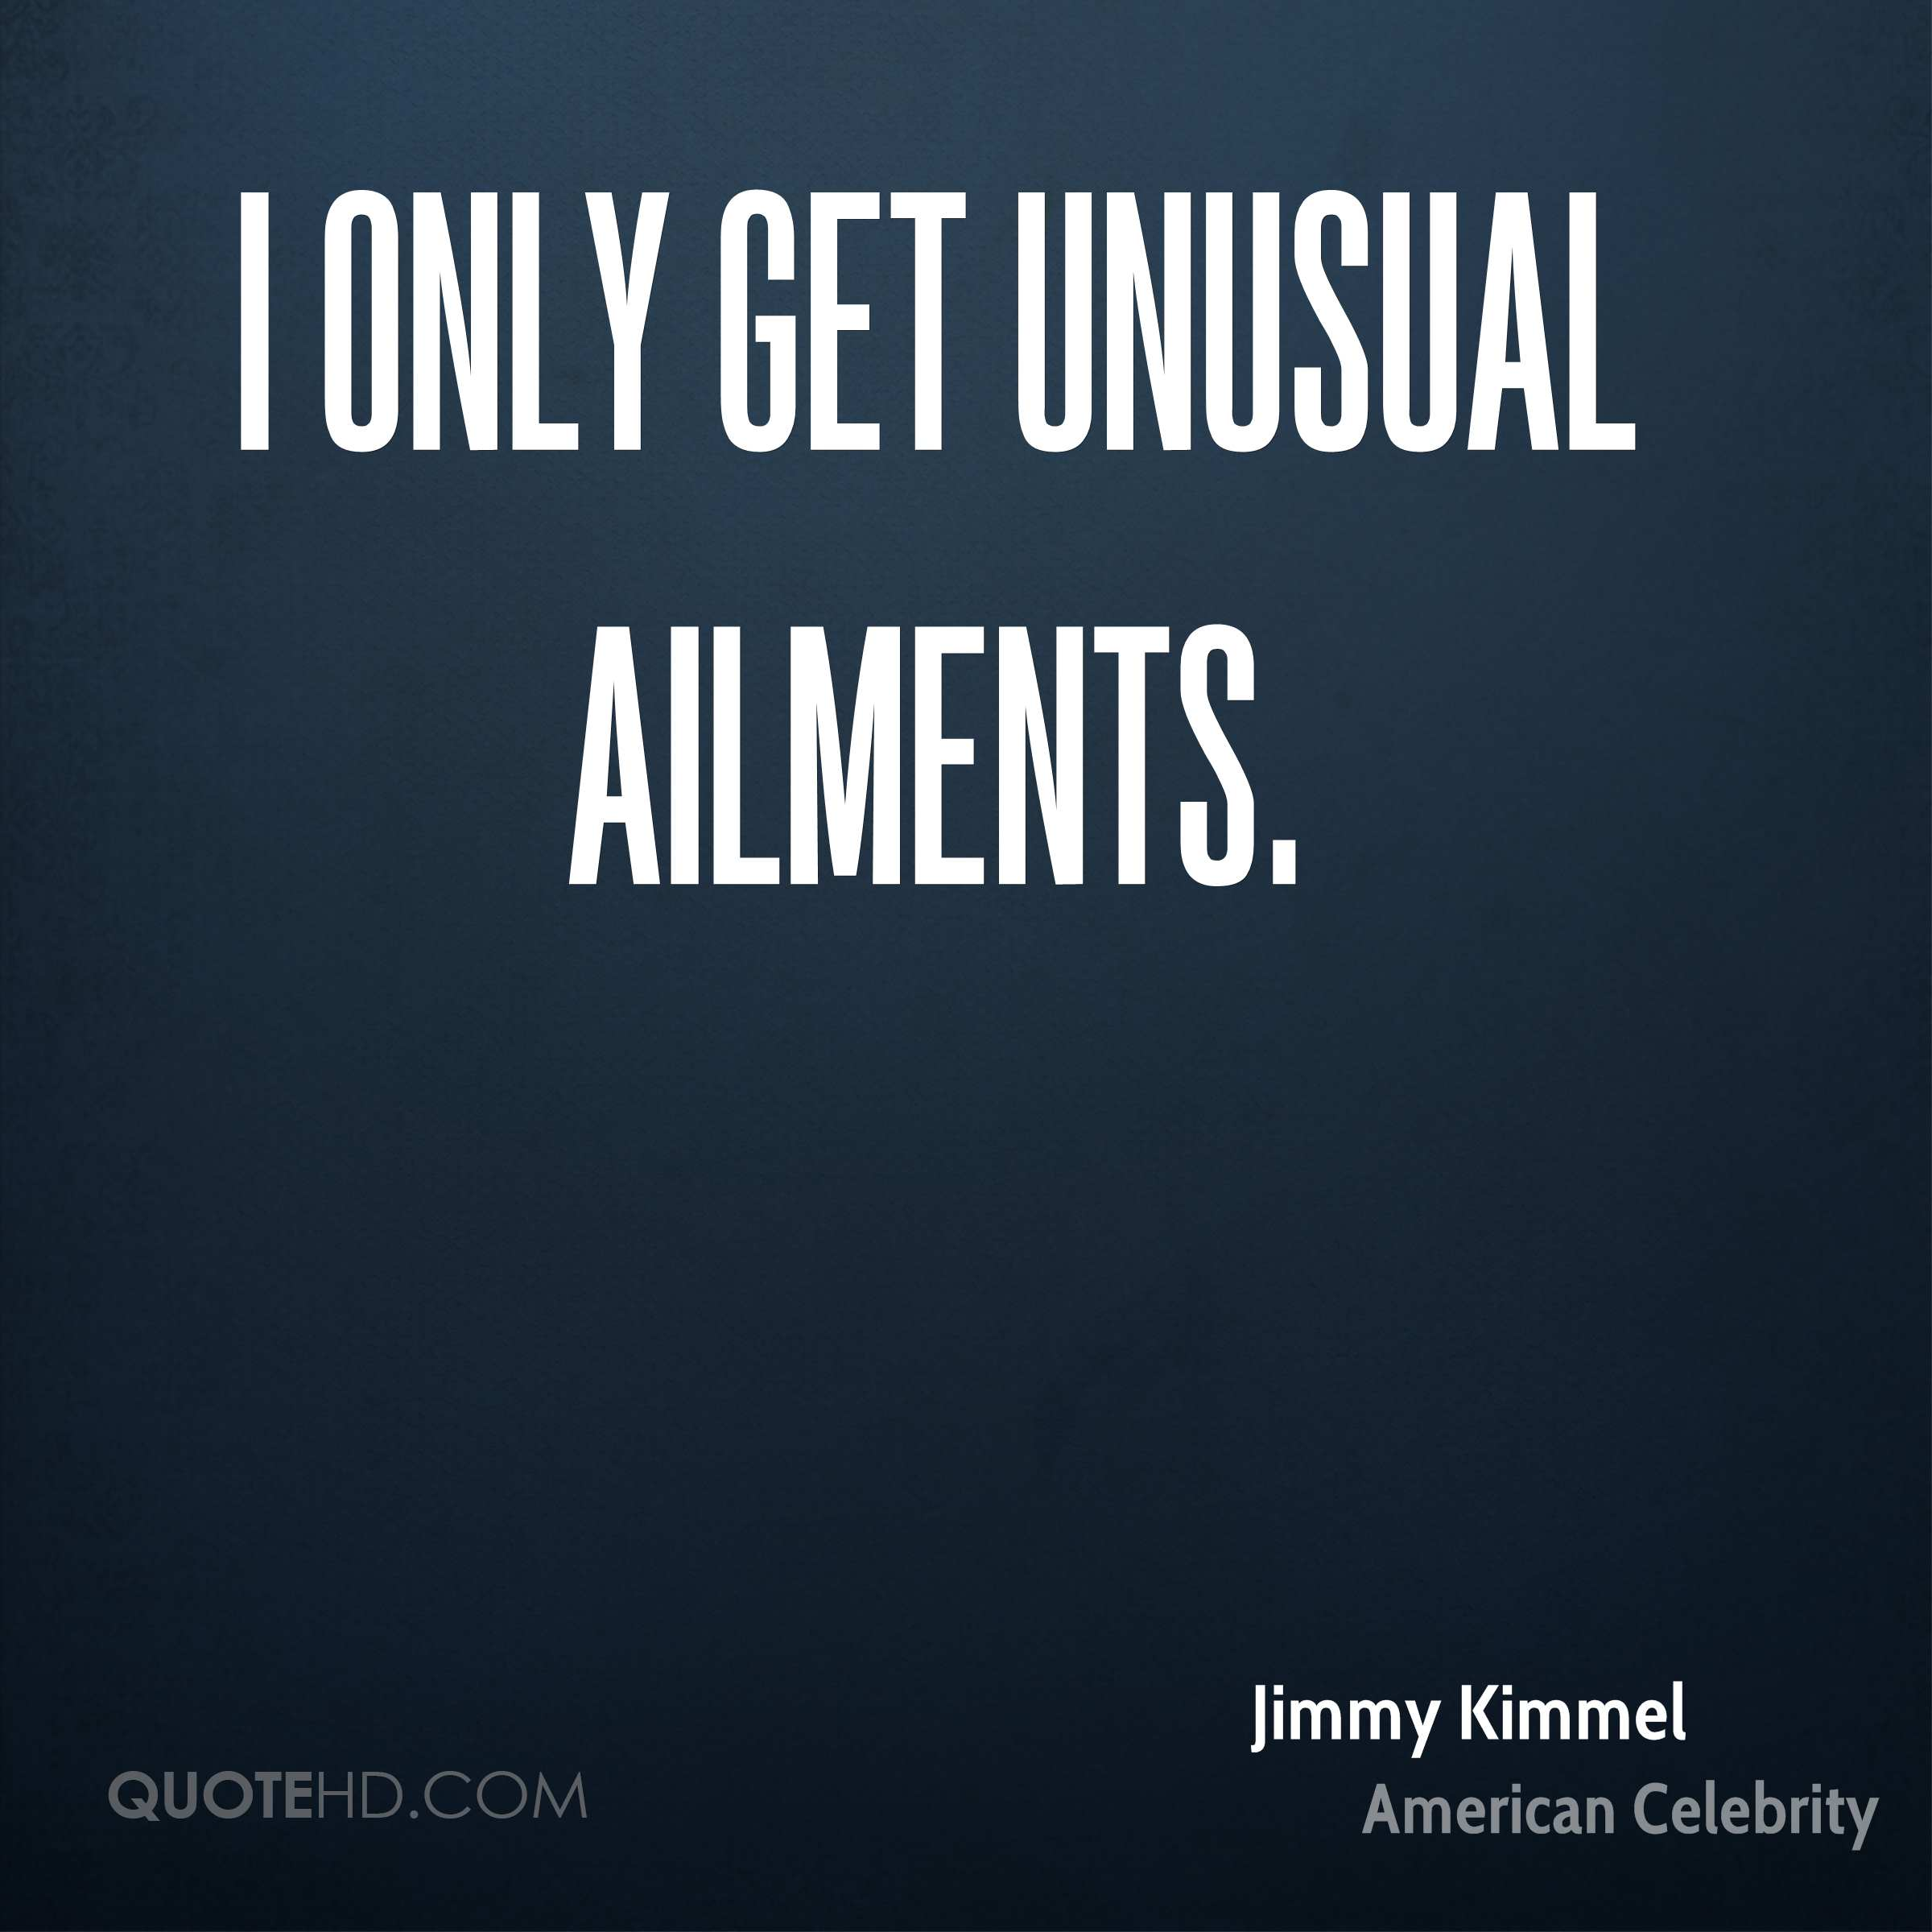 I only get unusual ailments.